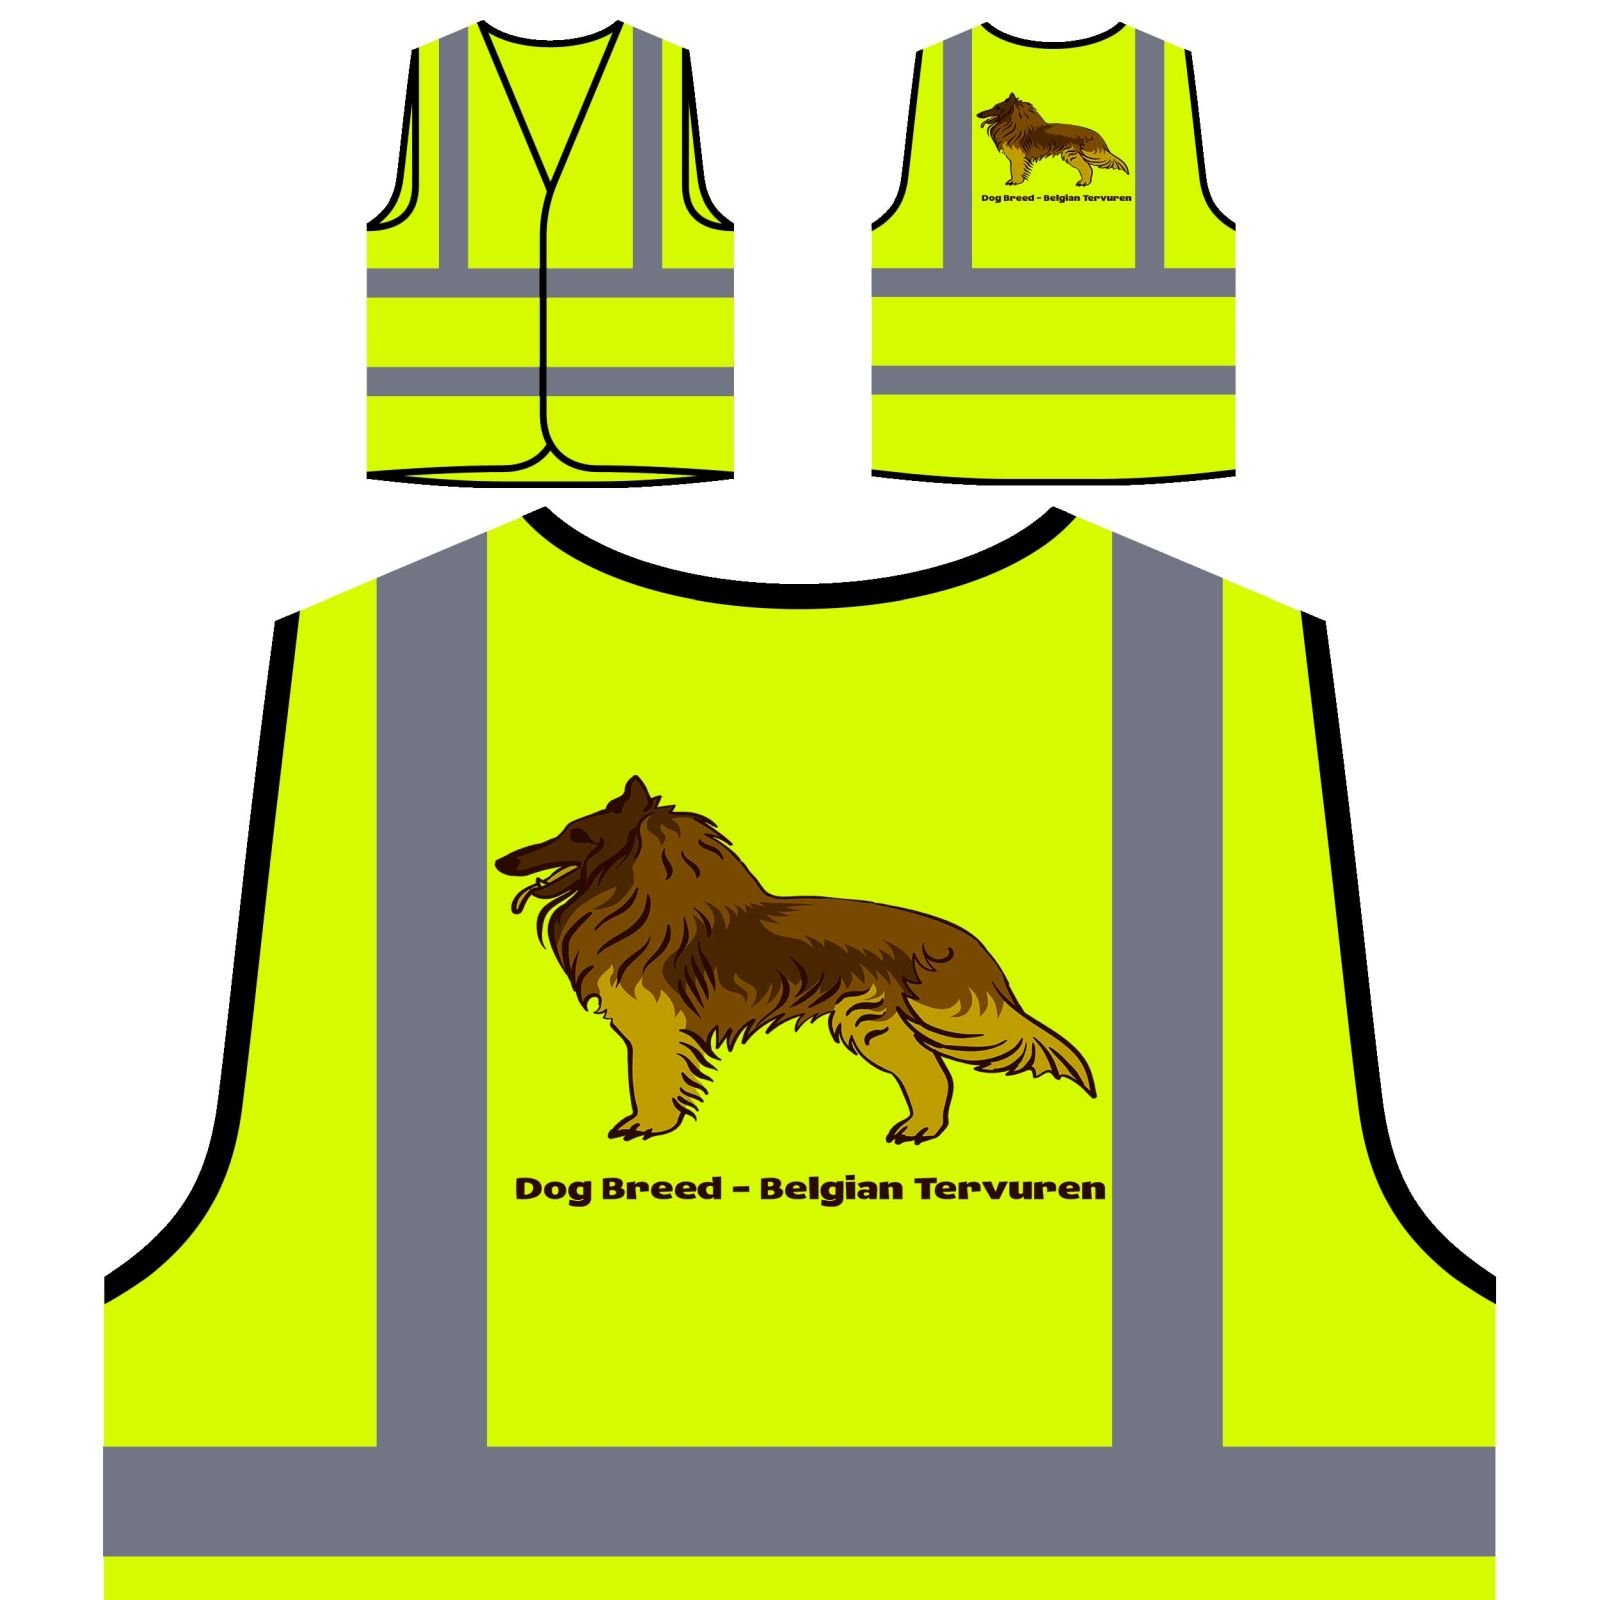 Dog Breed Belgian Tervuren 1 Personalized Hi Visibility Yellow Safety Jacket Vest Waistcoat s793v